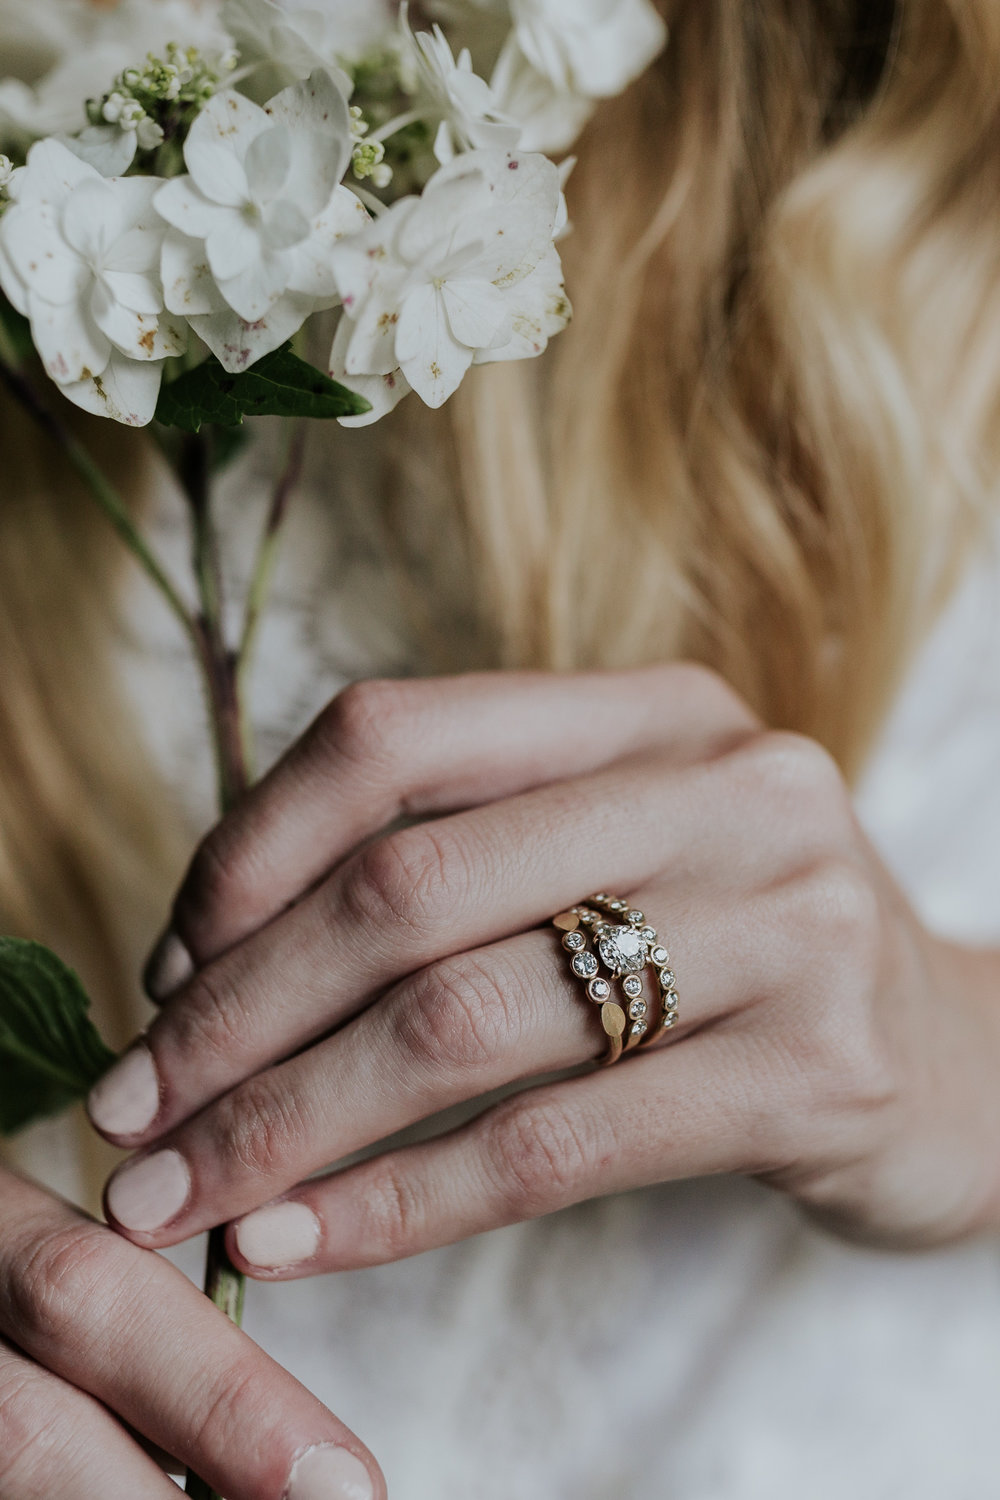 emily_hary_photography_katie_carder_social_size-35.jpg